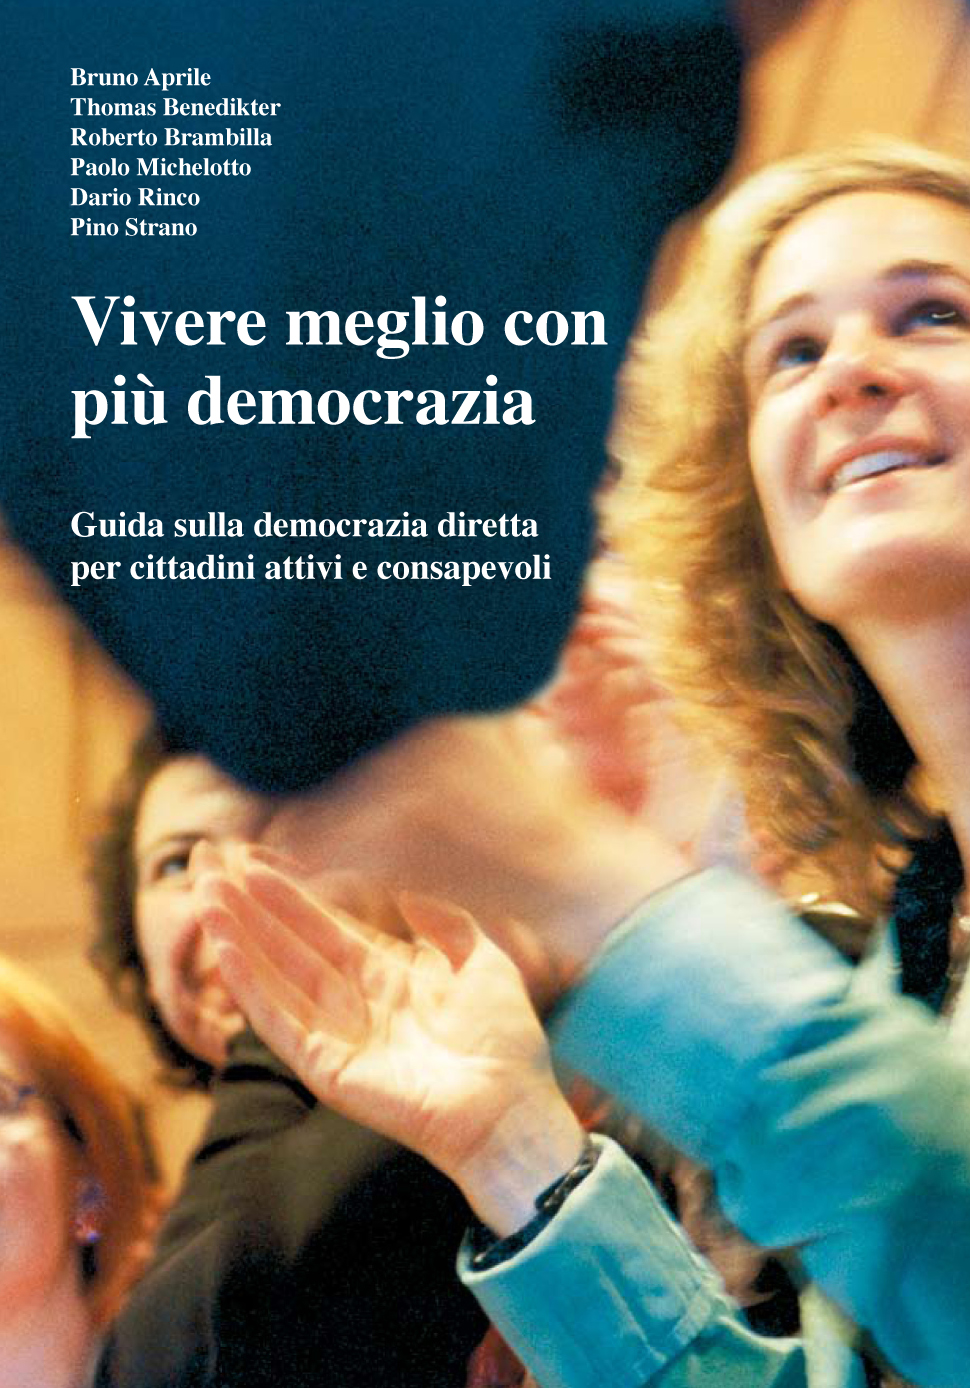 copertina vivere meglio con pi democrazia piccola